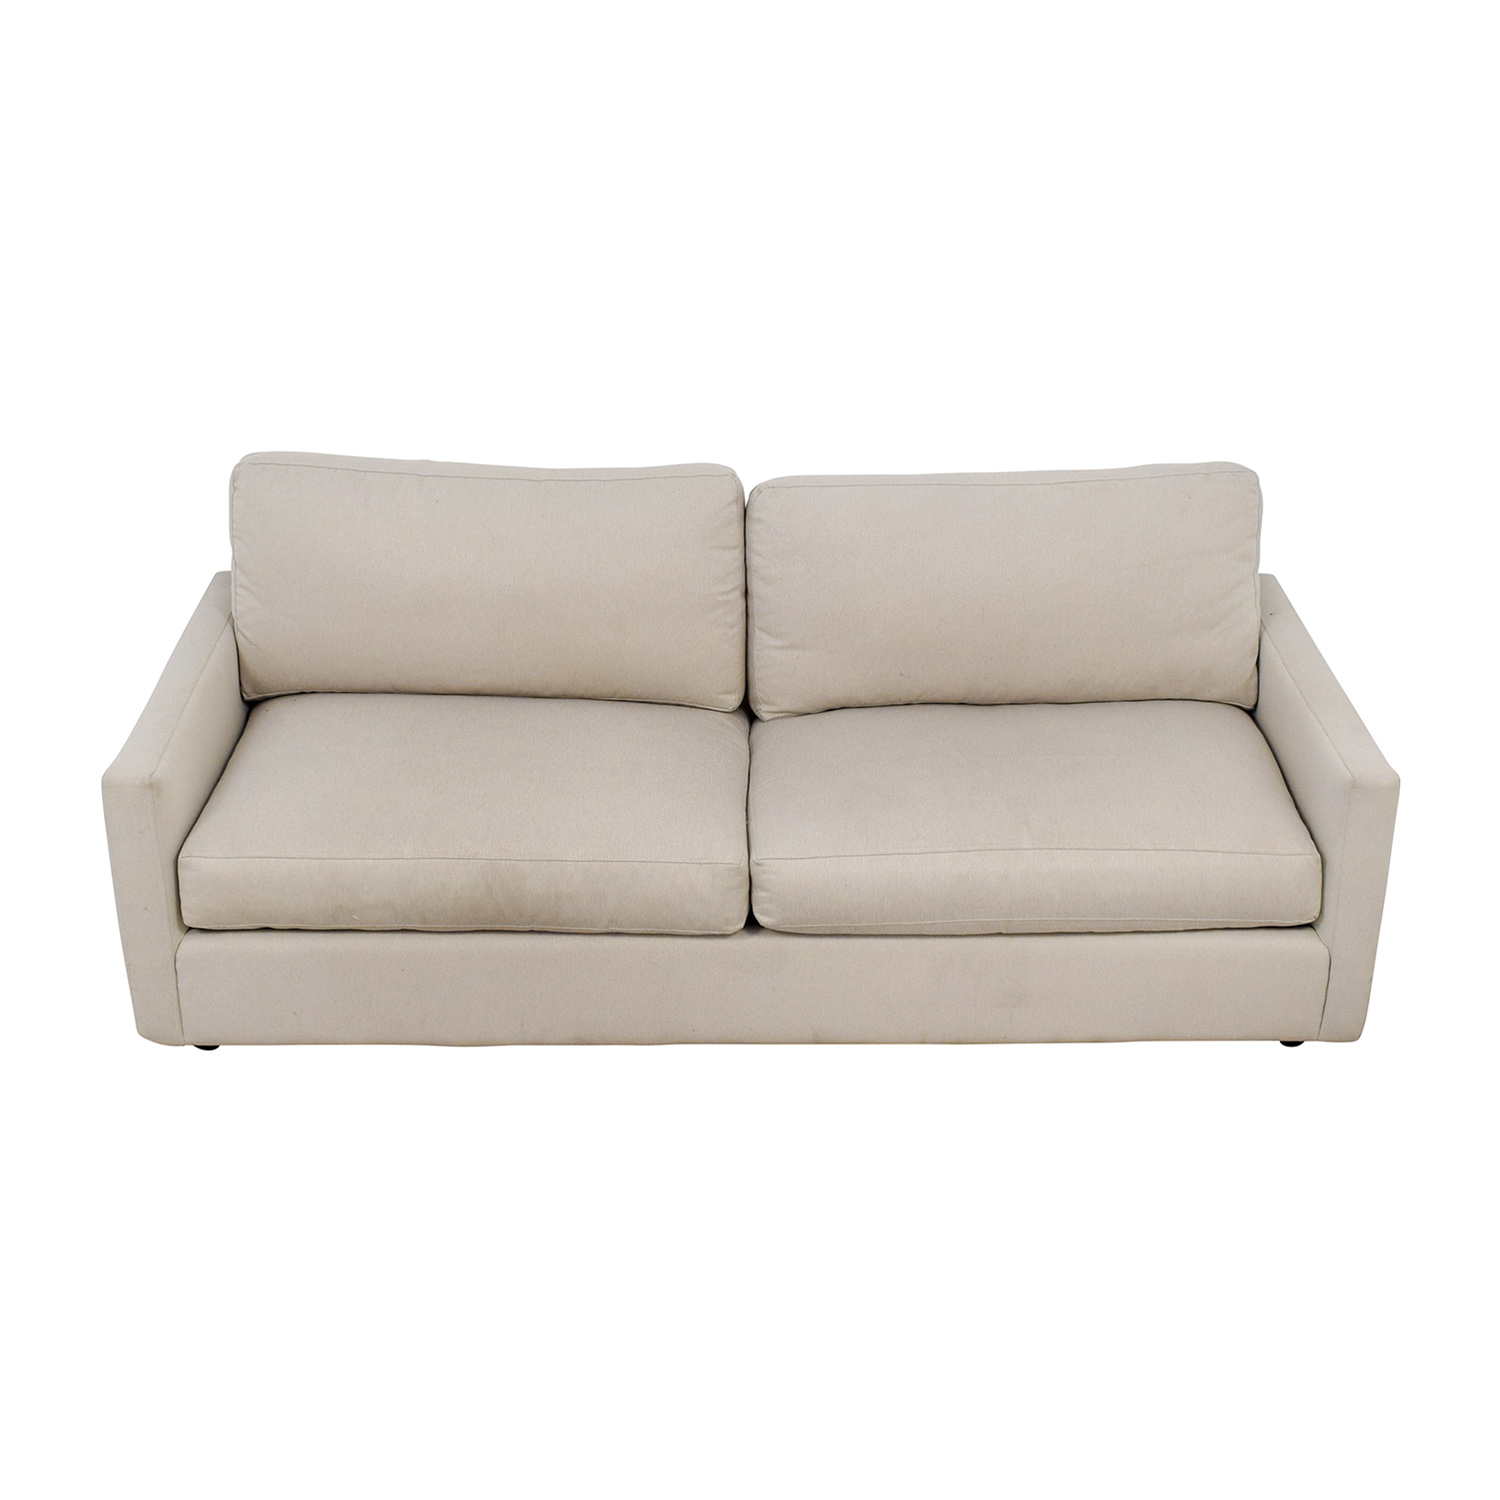 buy Room & Board Easton Beige Two-Cushion Sofa Room & Board Classic Sofas